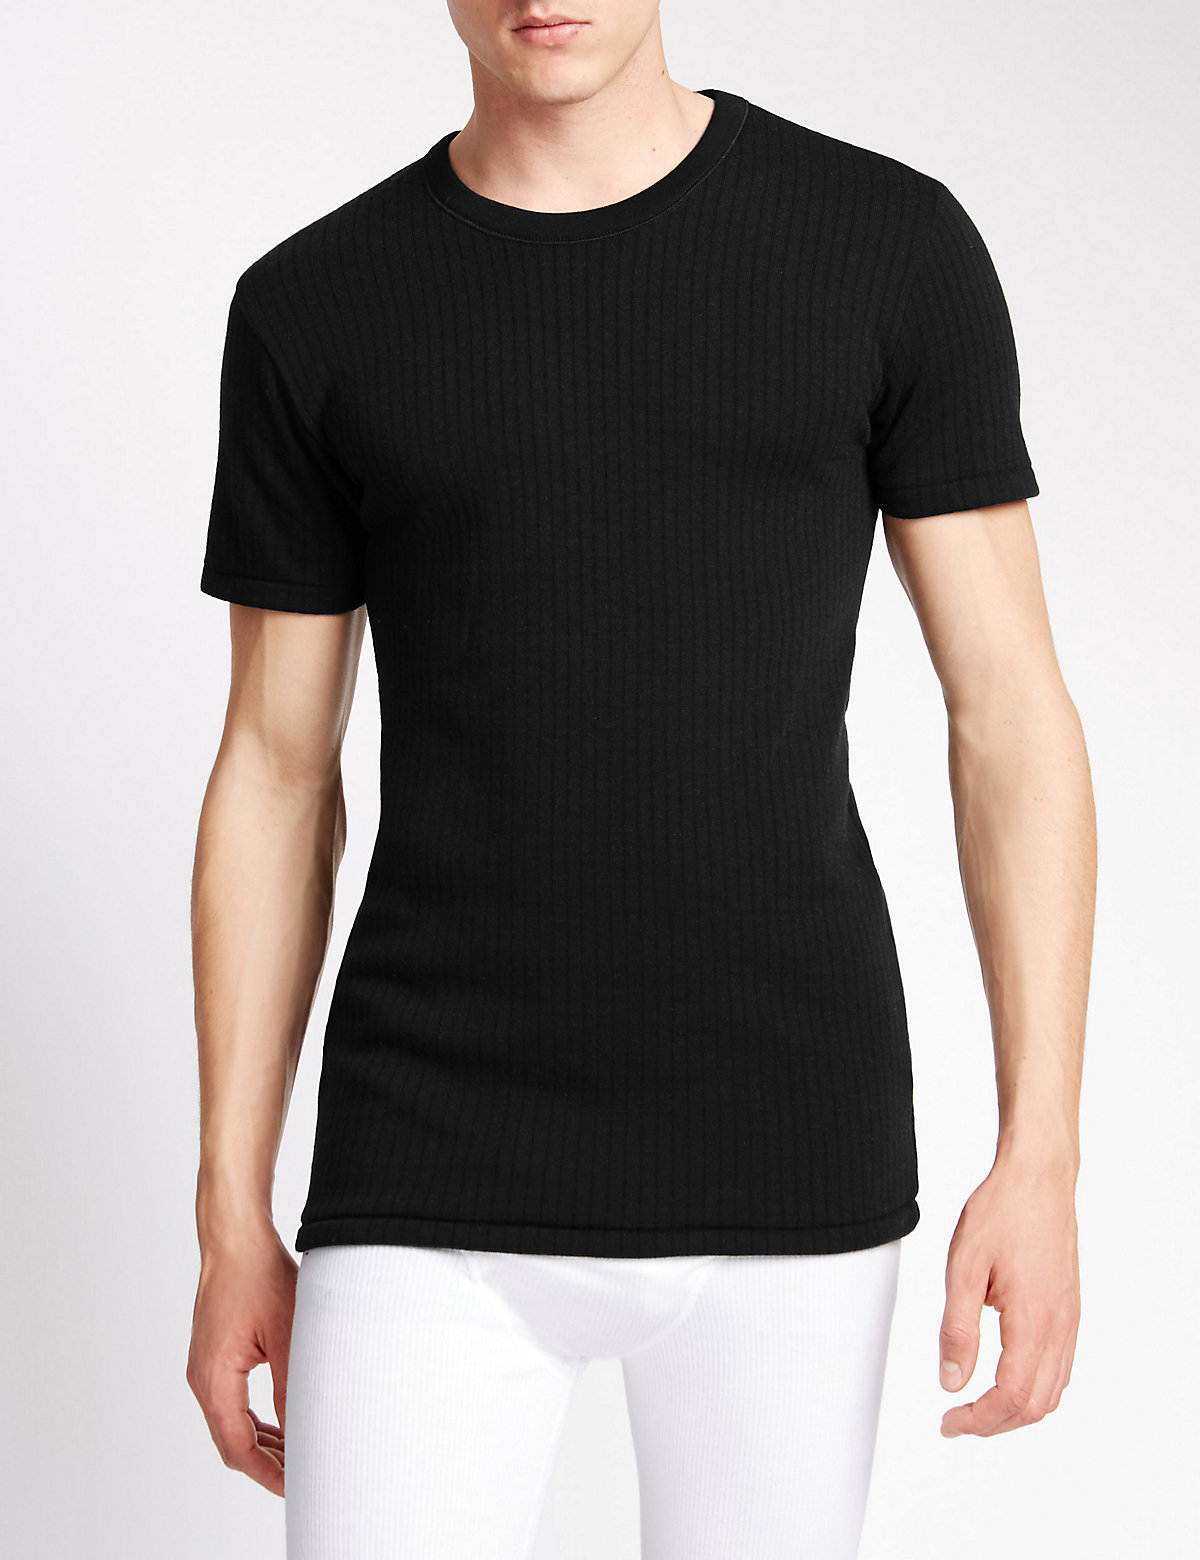 M&S Collection Short Sleeve Thermal Vest with Merino Wool